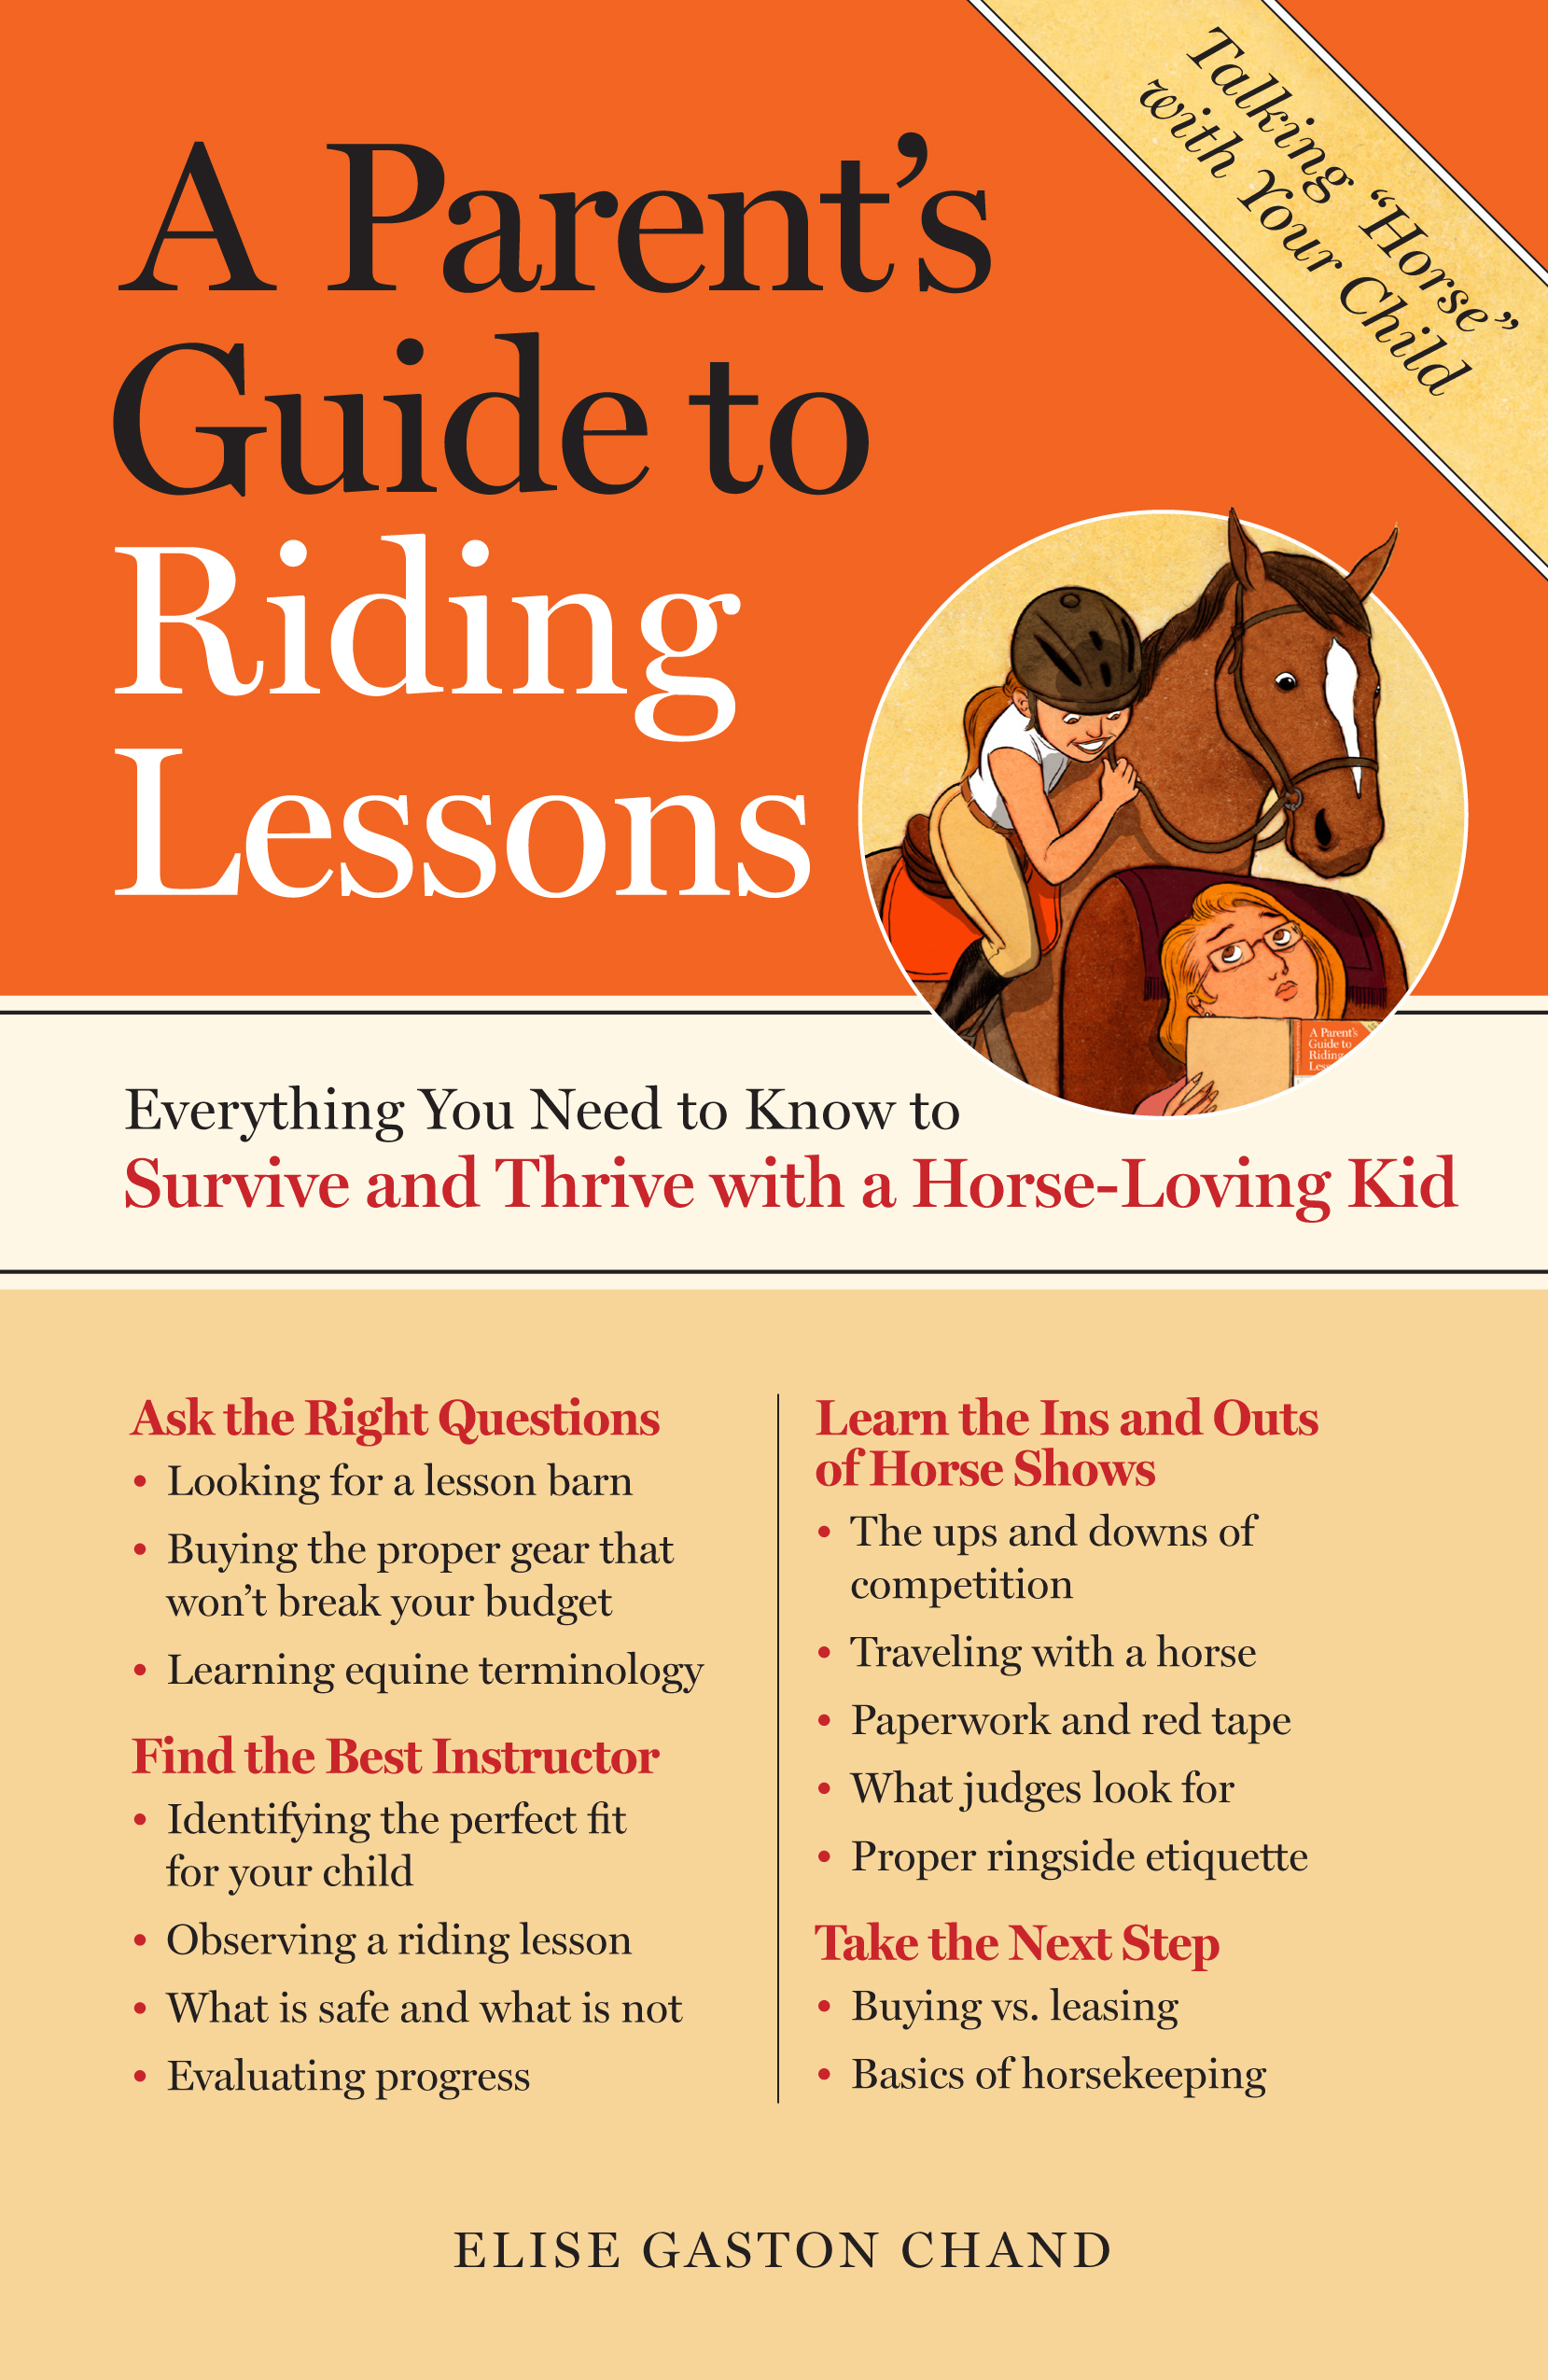 A Parent's Guide to Riding Lessons Everything You Need to Know to Survive and Thrive with a Horse-Loving Kid  - Elise Gaston Chand